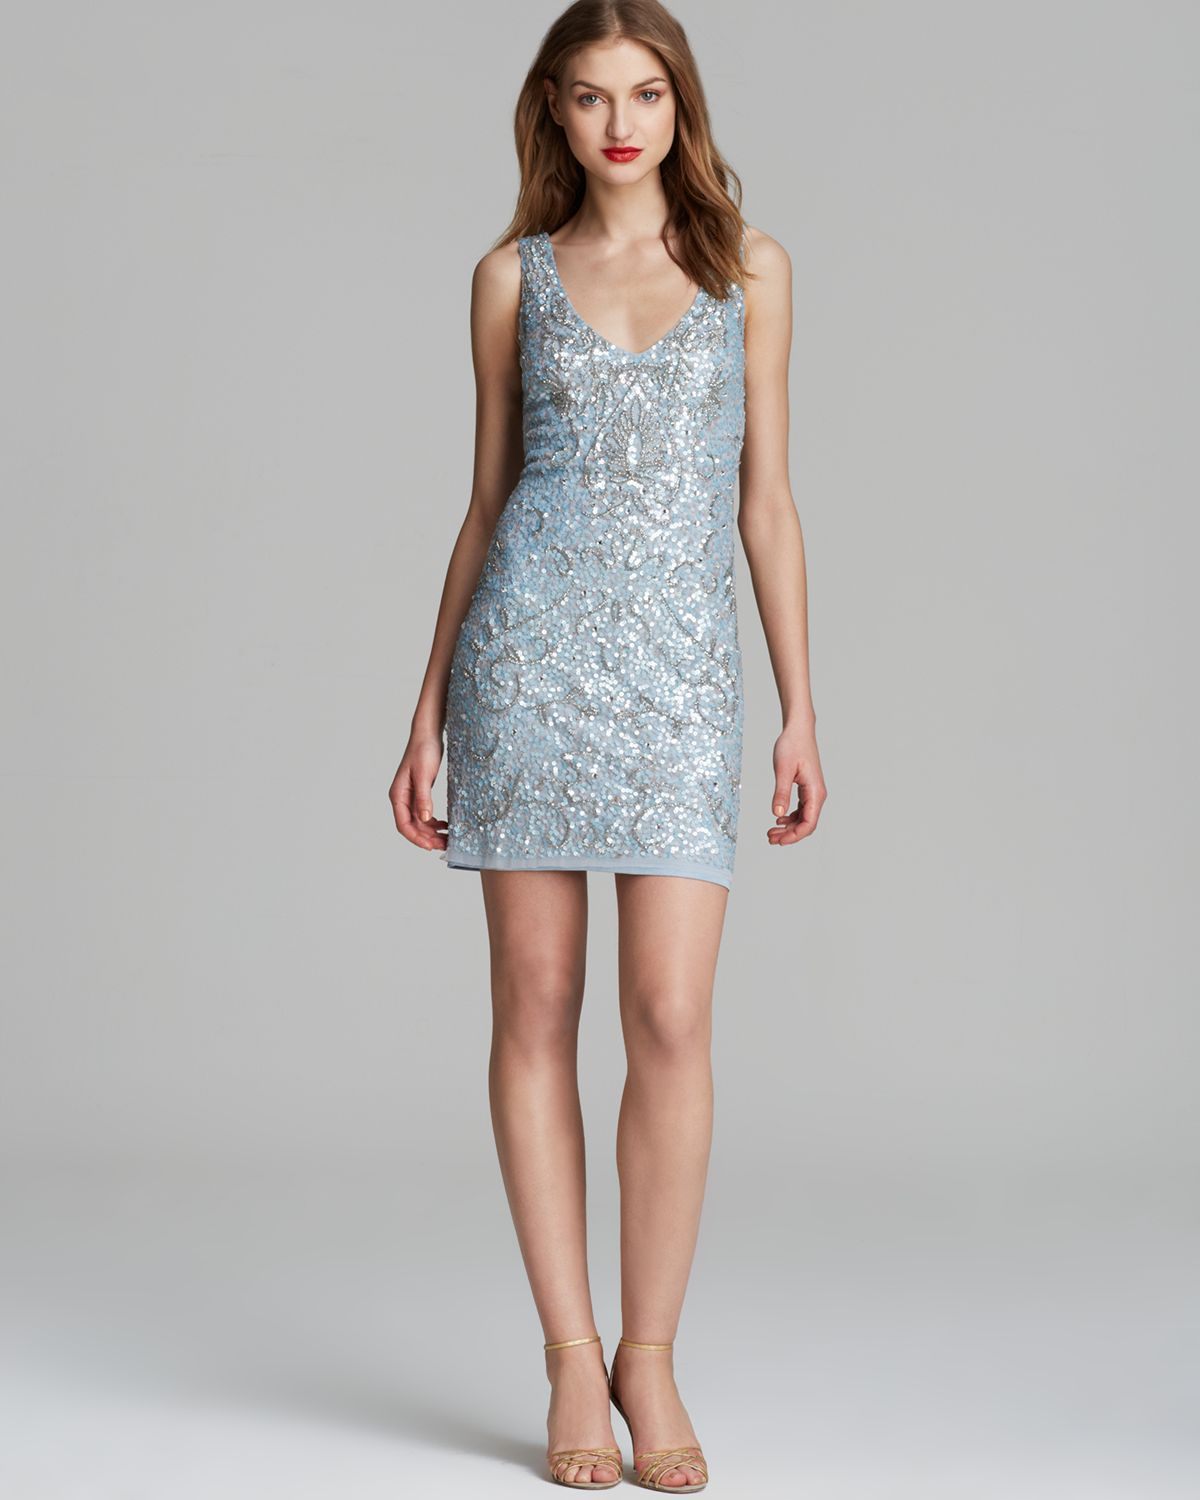 Aidan mattox Dress - Double V Neck Sequin in Blue | Lyst